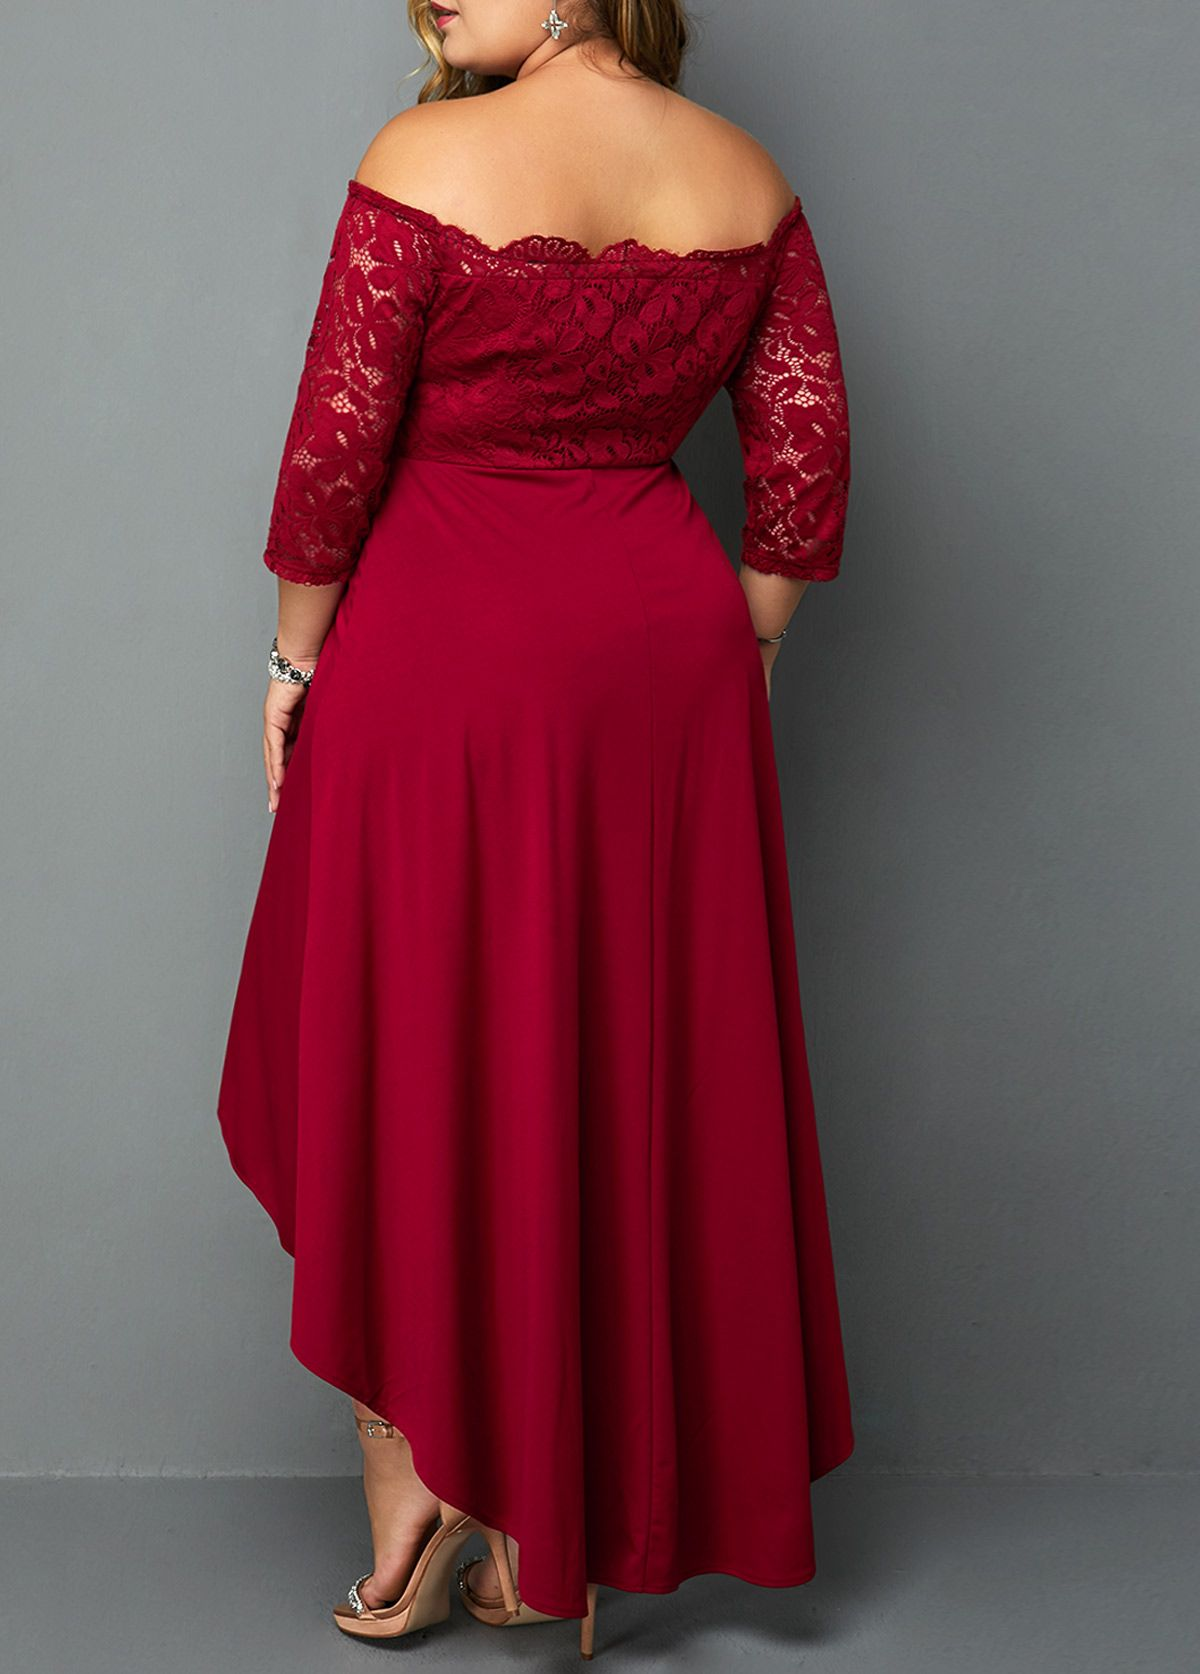 Plus Size Lace Panel Off The Shoulder High Low Dress Rotita Com Usd 33 43 Plus Size Red Dress Party Dresses With Sleeves Fancy Cocktail Dresses [ 1674 x 1200 Pixel ]